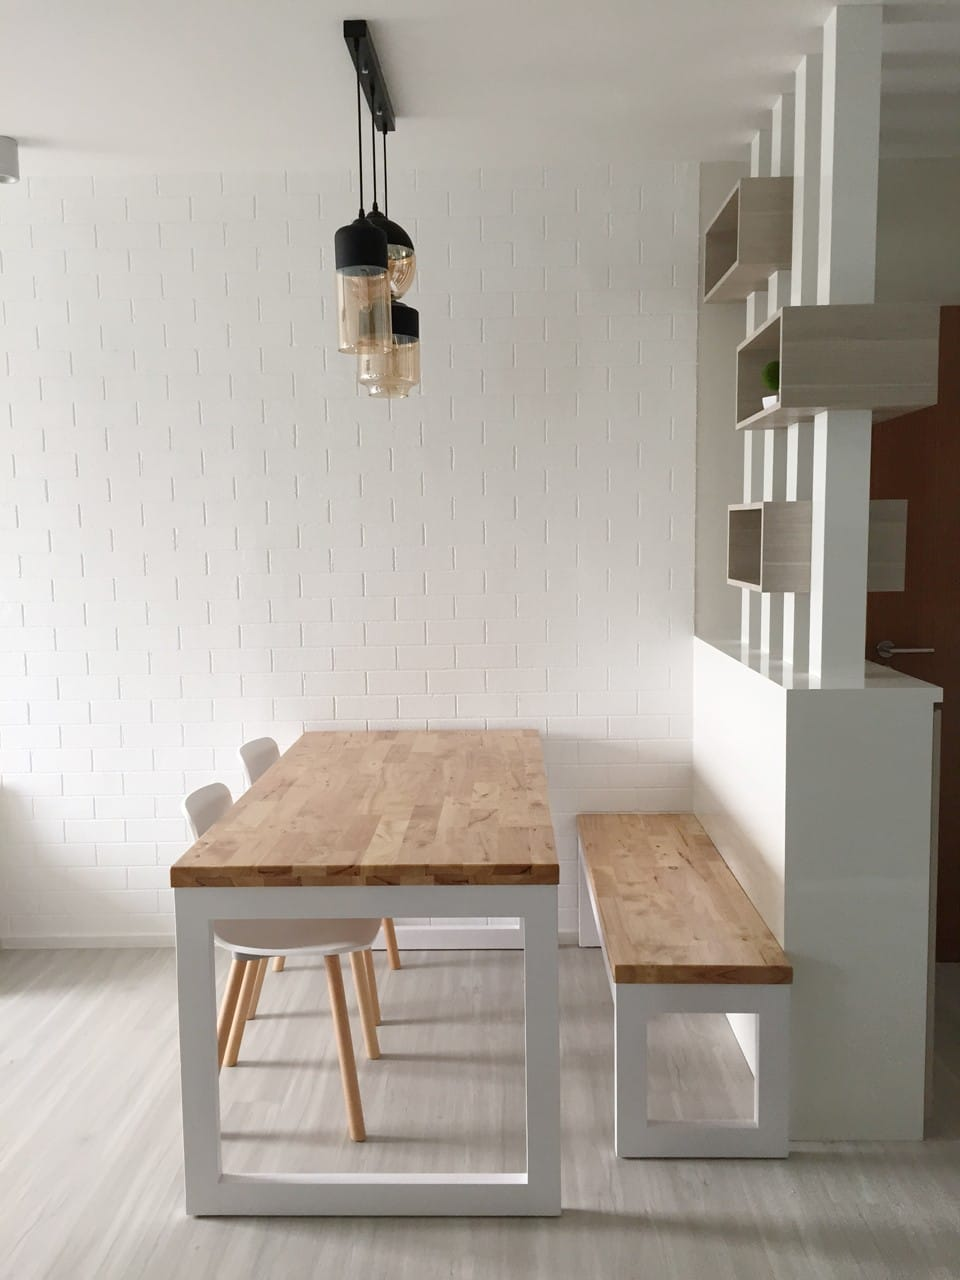 Apartment - Fernvale | Products Seen: [Uni (flushed) Dining Table w/ Butcher Top, Uni Bench w/ Butcher Top & Plug+ Round Leg Chair]